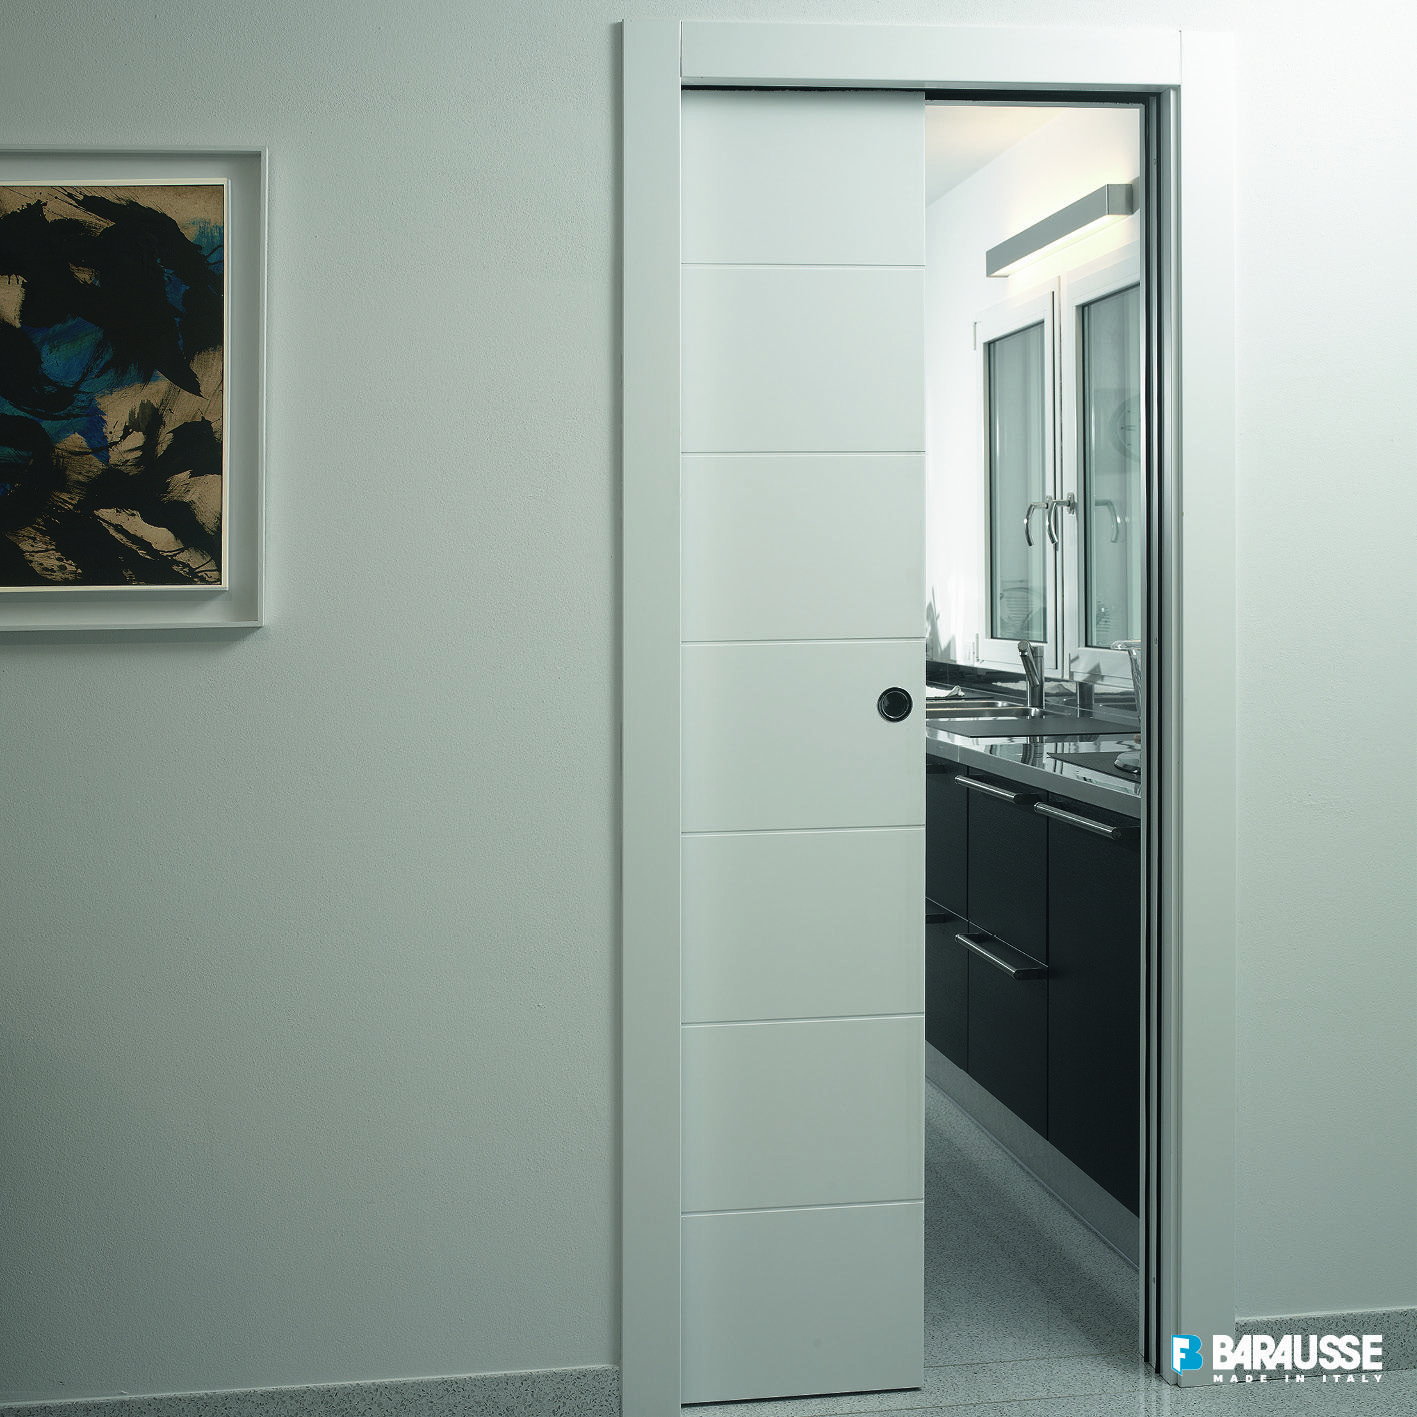 Barausse Doors NYC. Visit Our Showroom For More Details Or Call Us  718 434 2111.